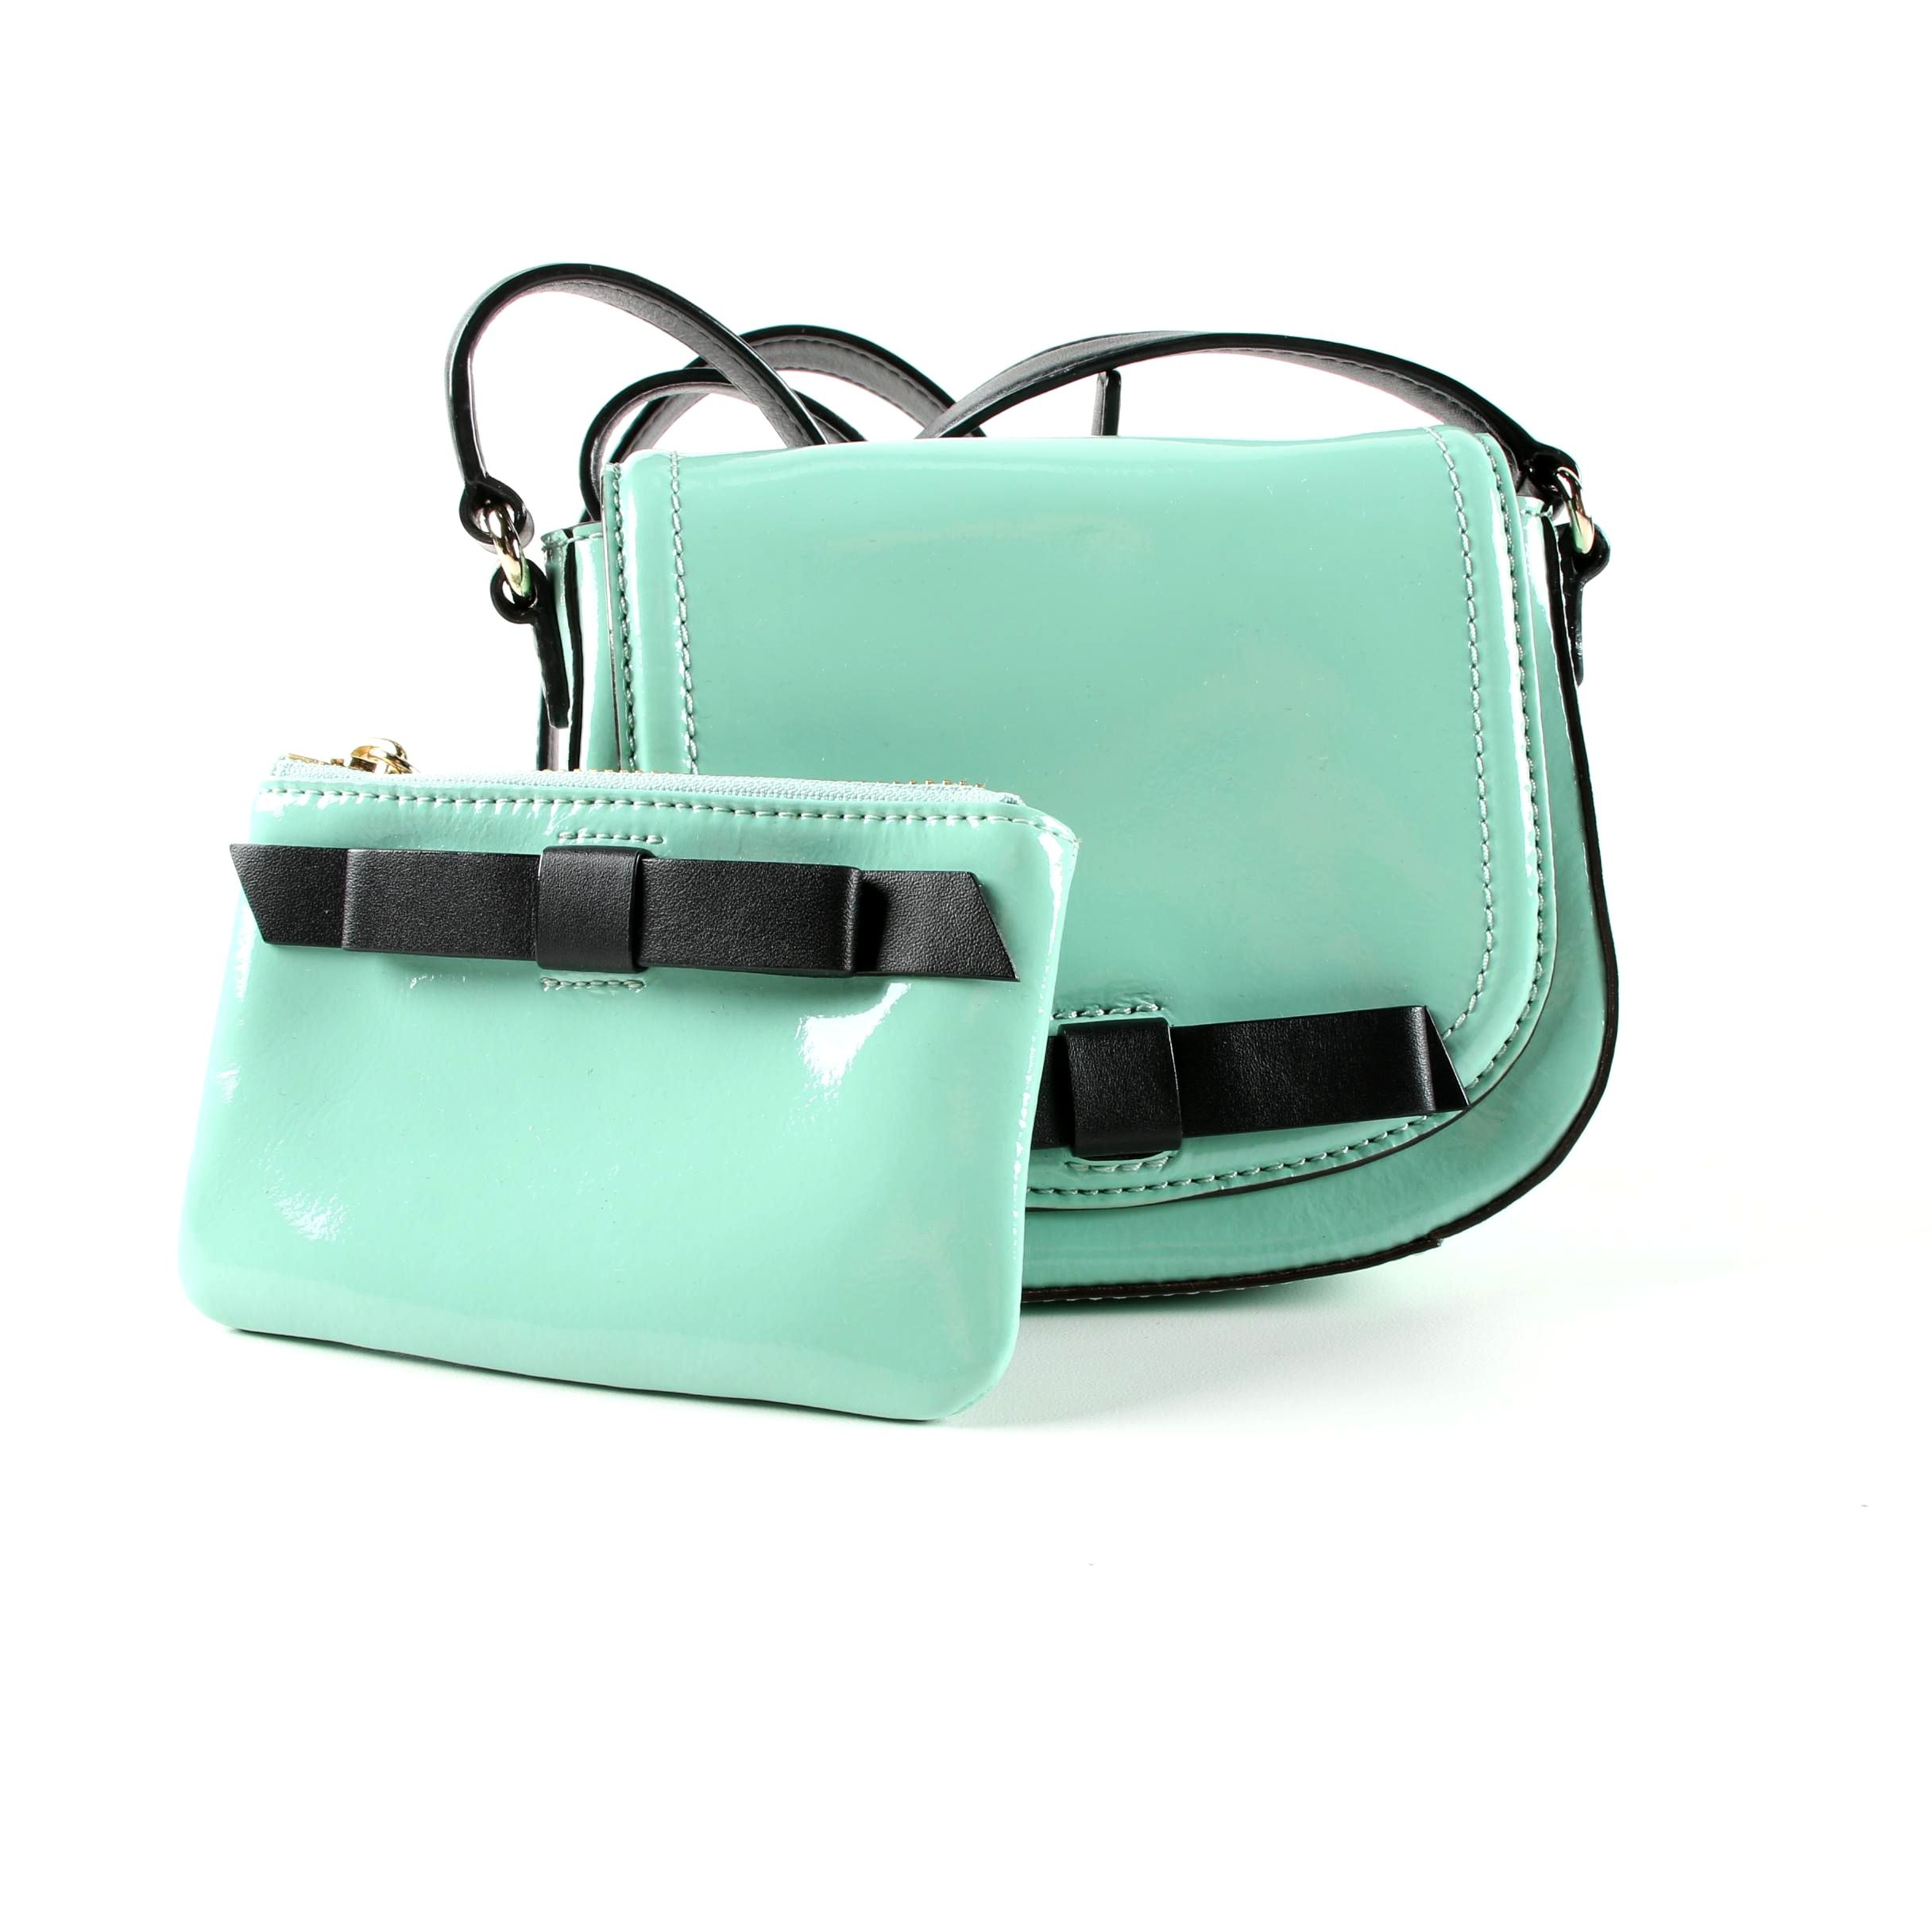 Kate Spade Chelsea Park Jade Coastline Patent Leather Crossbody Bag and Pouch